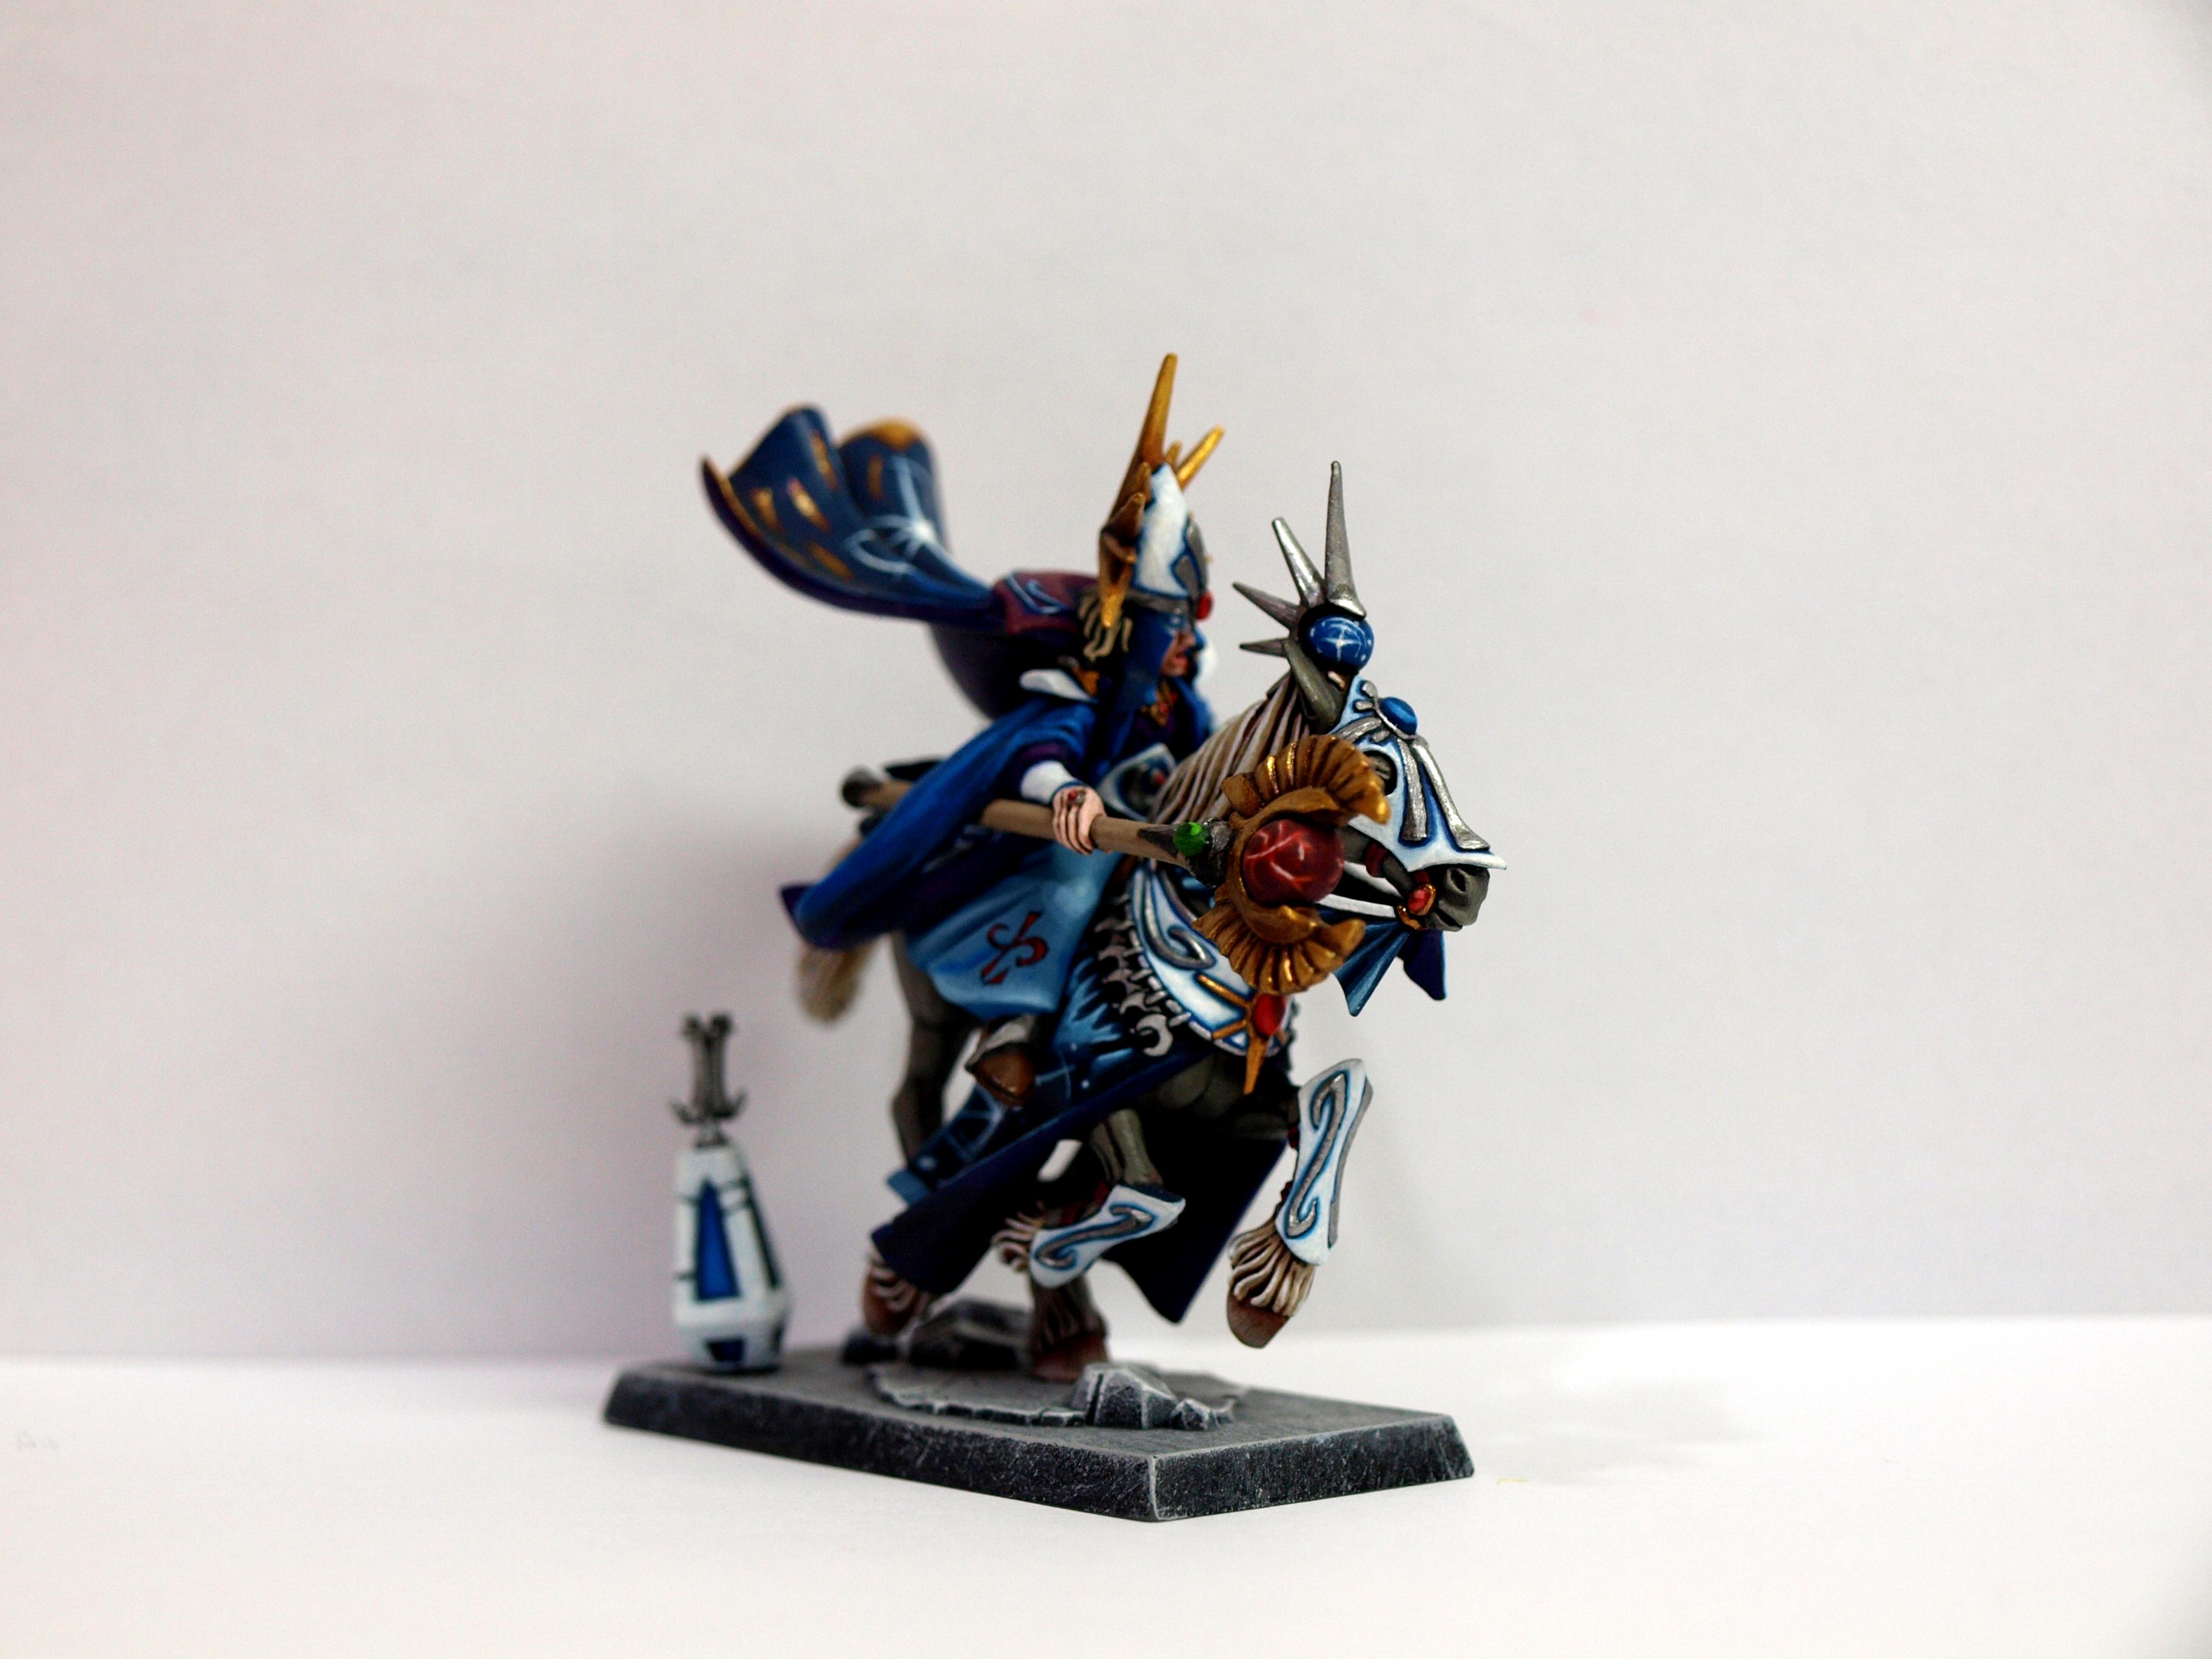 Age Of Sigmar, High Elves, Mounted Mage, Painting, Warhammer Fantasy